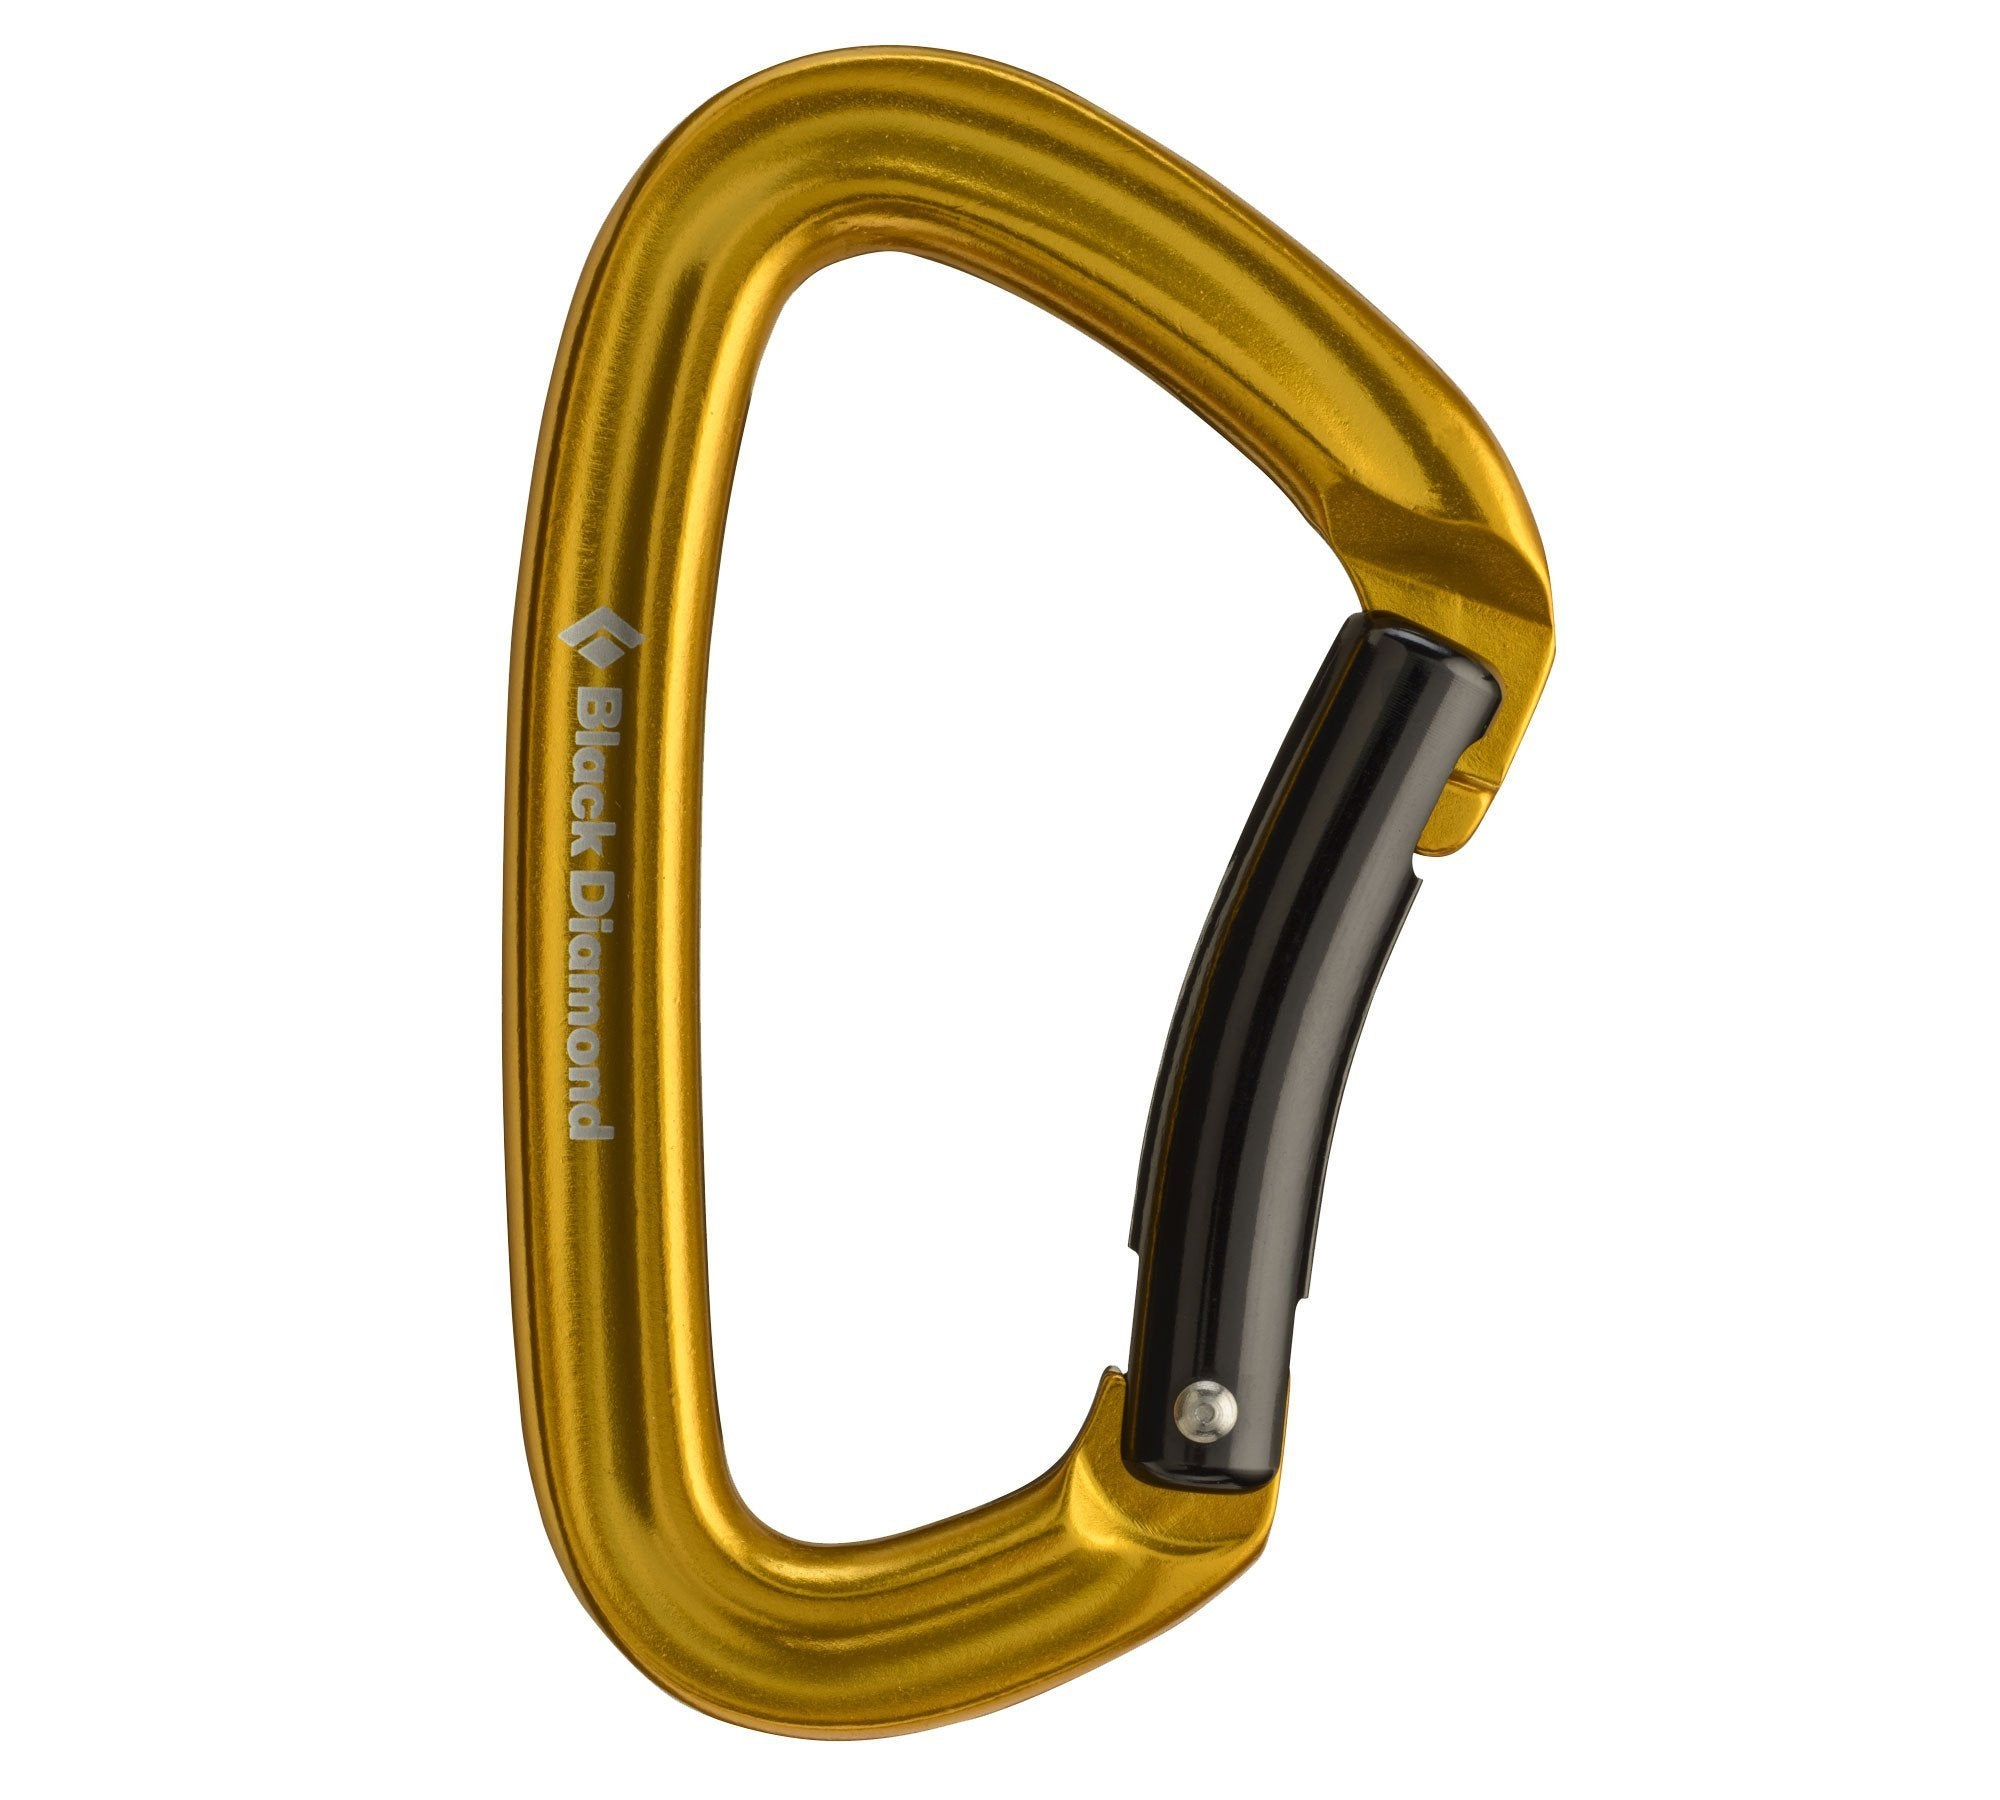 Black Diamond Positron Bent-gate climbing carabiner, in gold colour with black gate